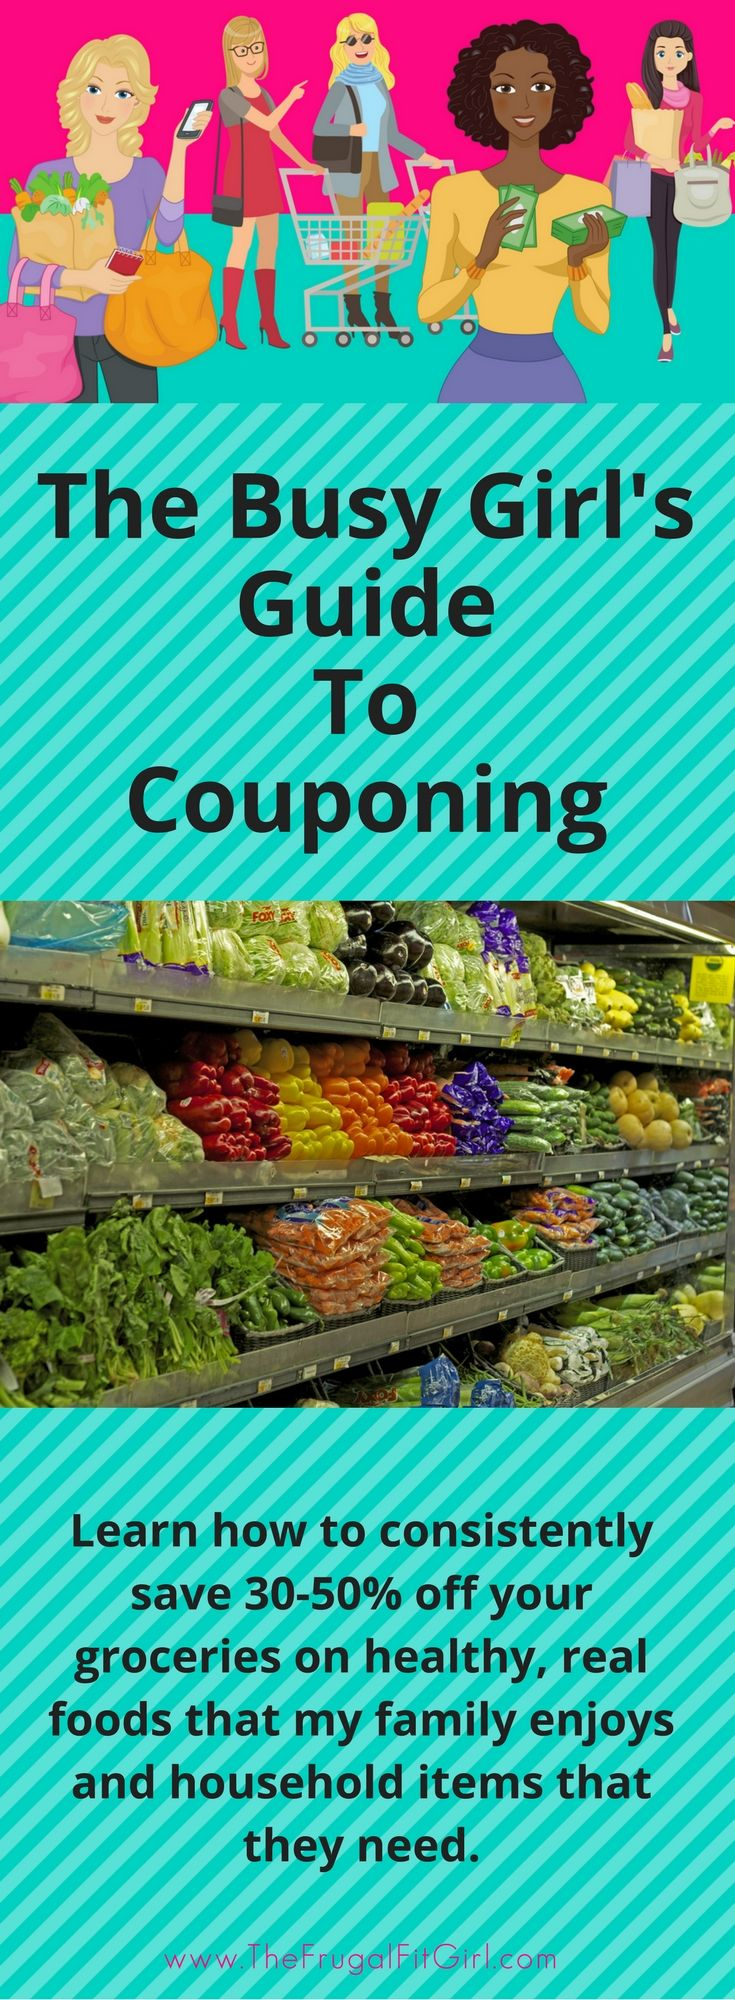 Couponing | Eating Healthy | Grocery Shopping on a Budget | Eating Healthy on a Budget | How to Coupon | Beginner Couponing | Couponing 101| Extreme Couponing for Beginners | Save Money